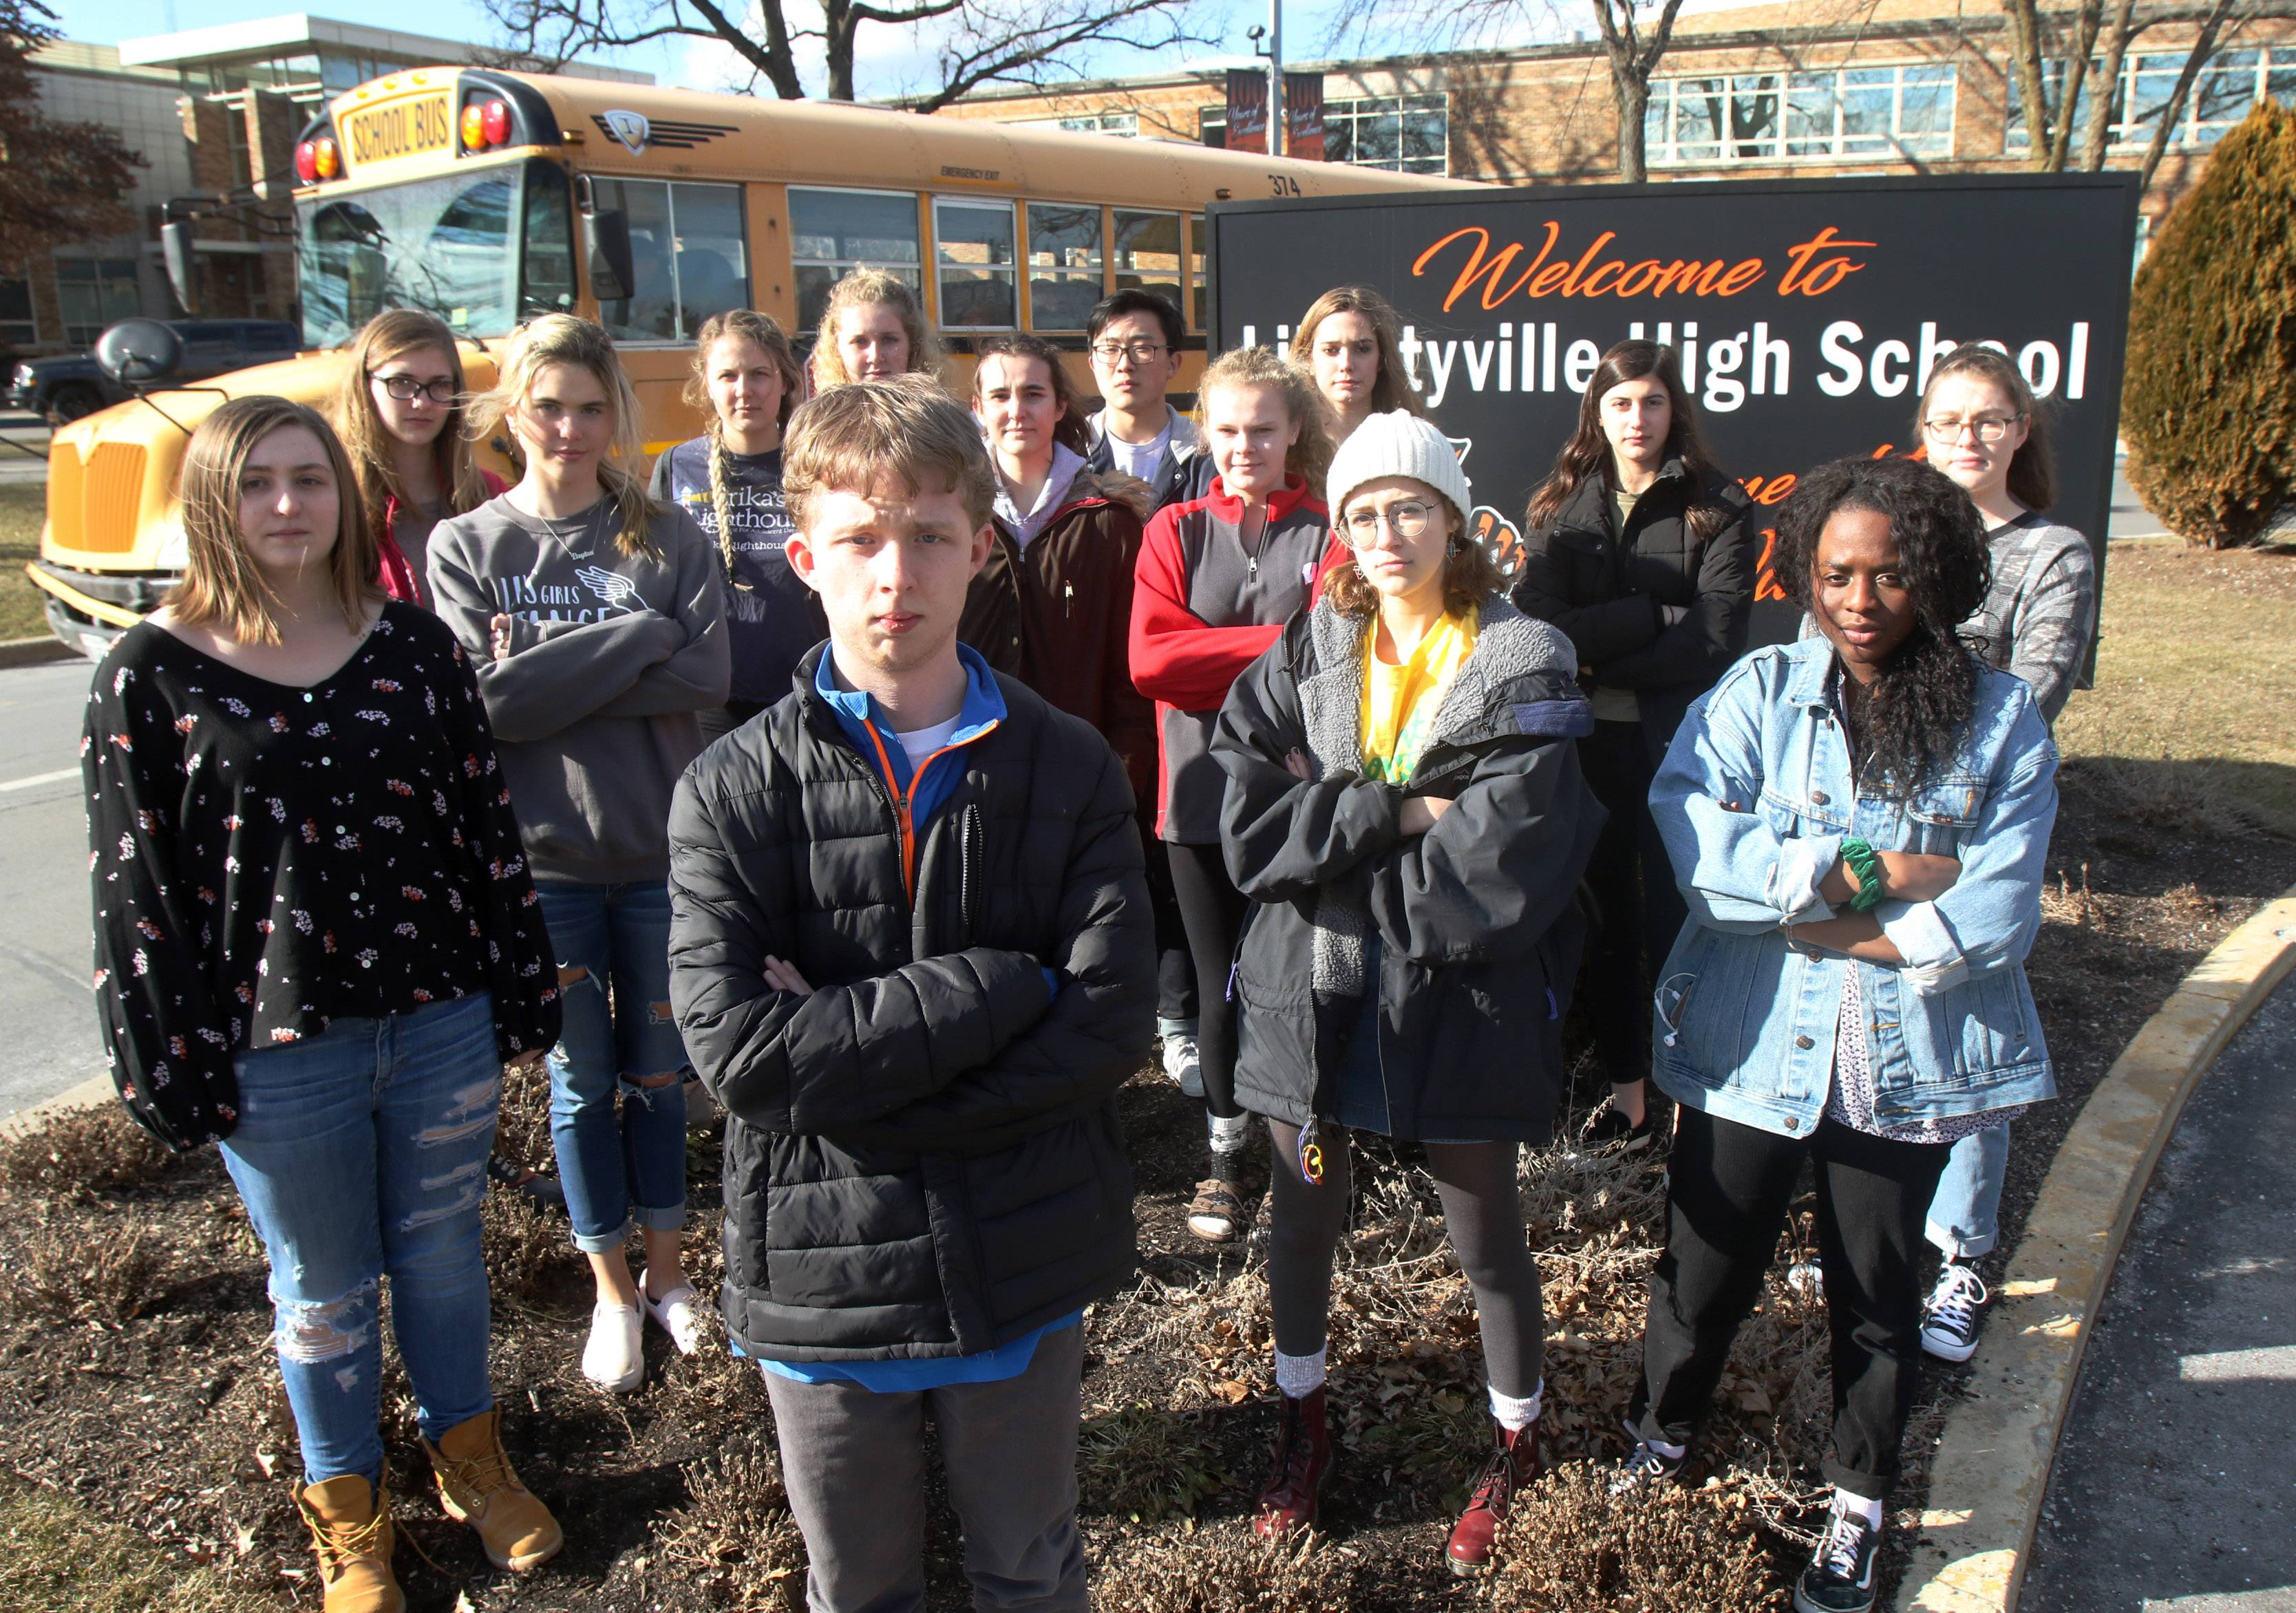 These students organized a walkout planned for today at Libertyville High School, one of several suburban schools where actions were scheduled to call for safer gun control policies.